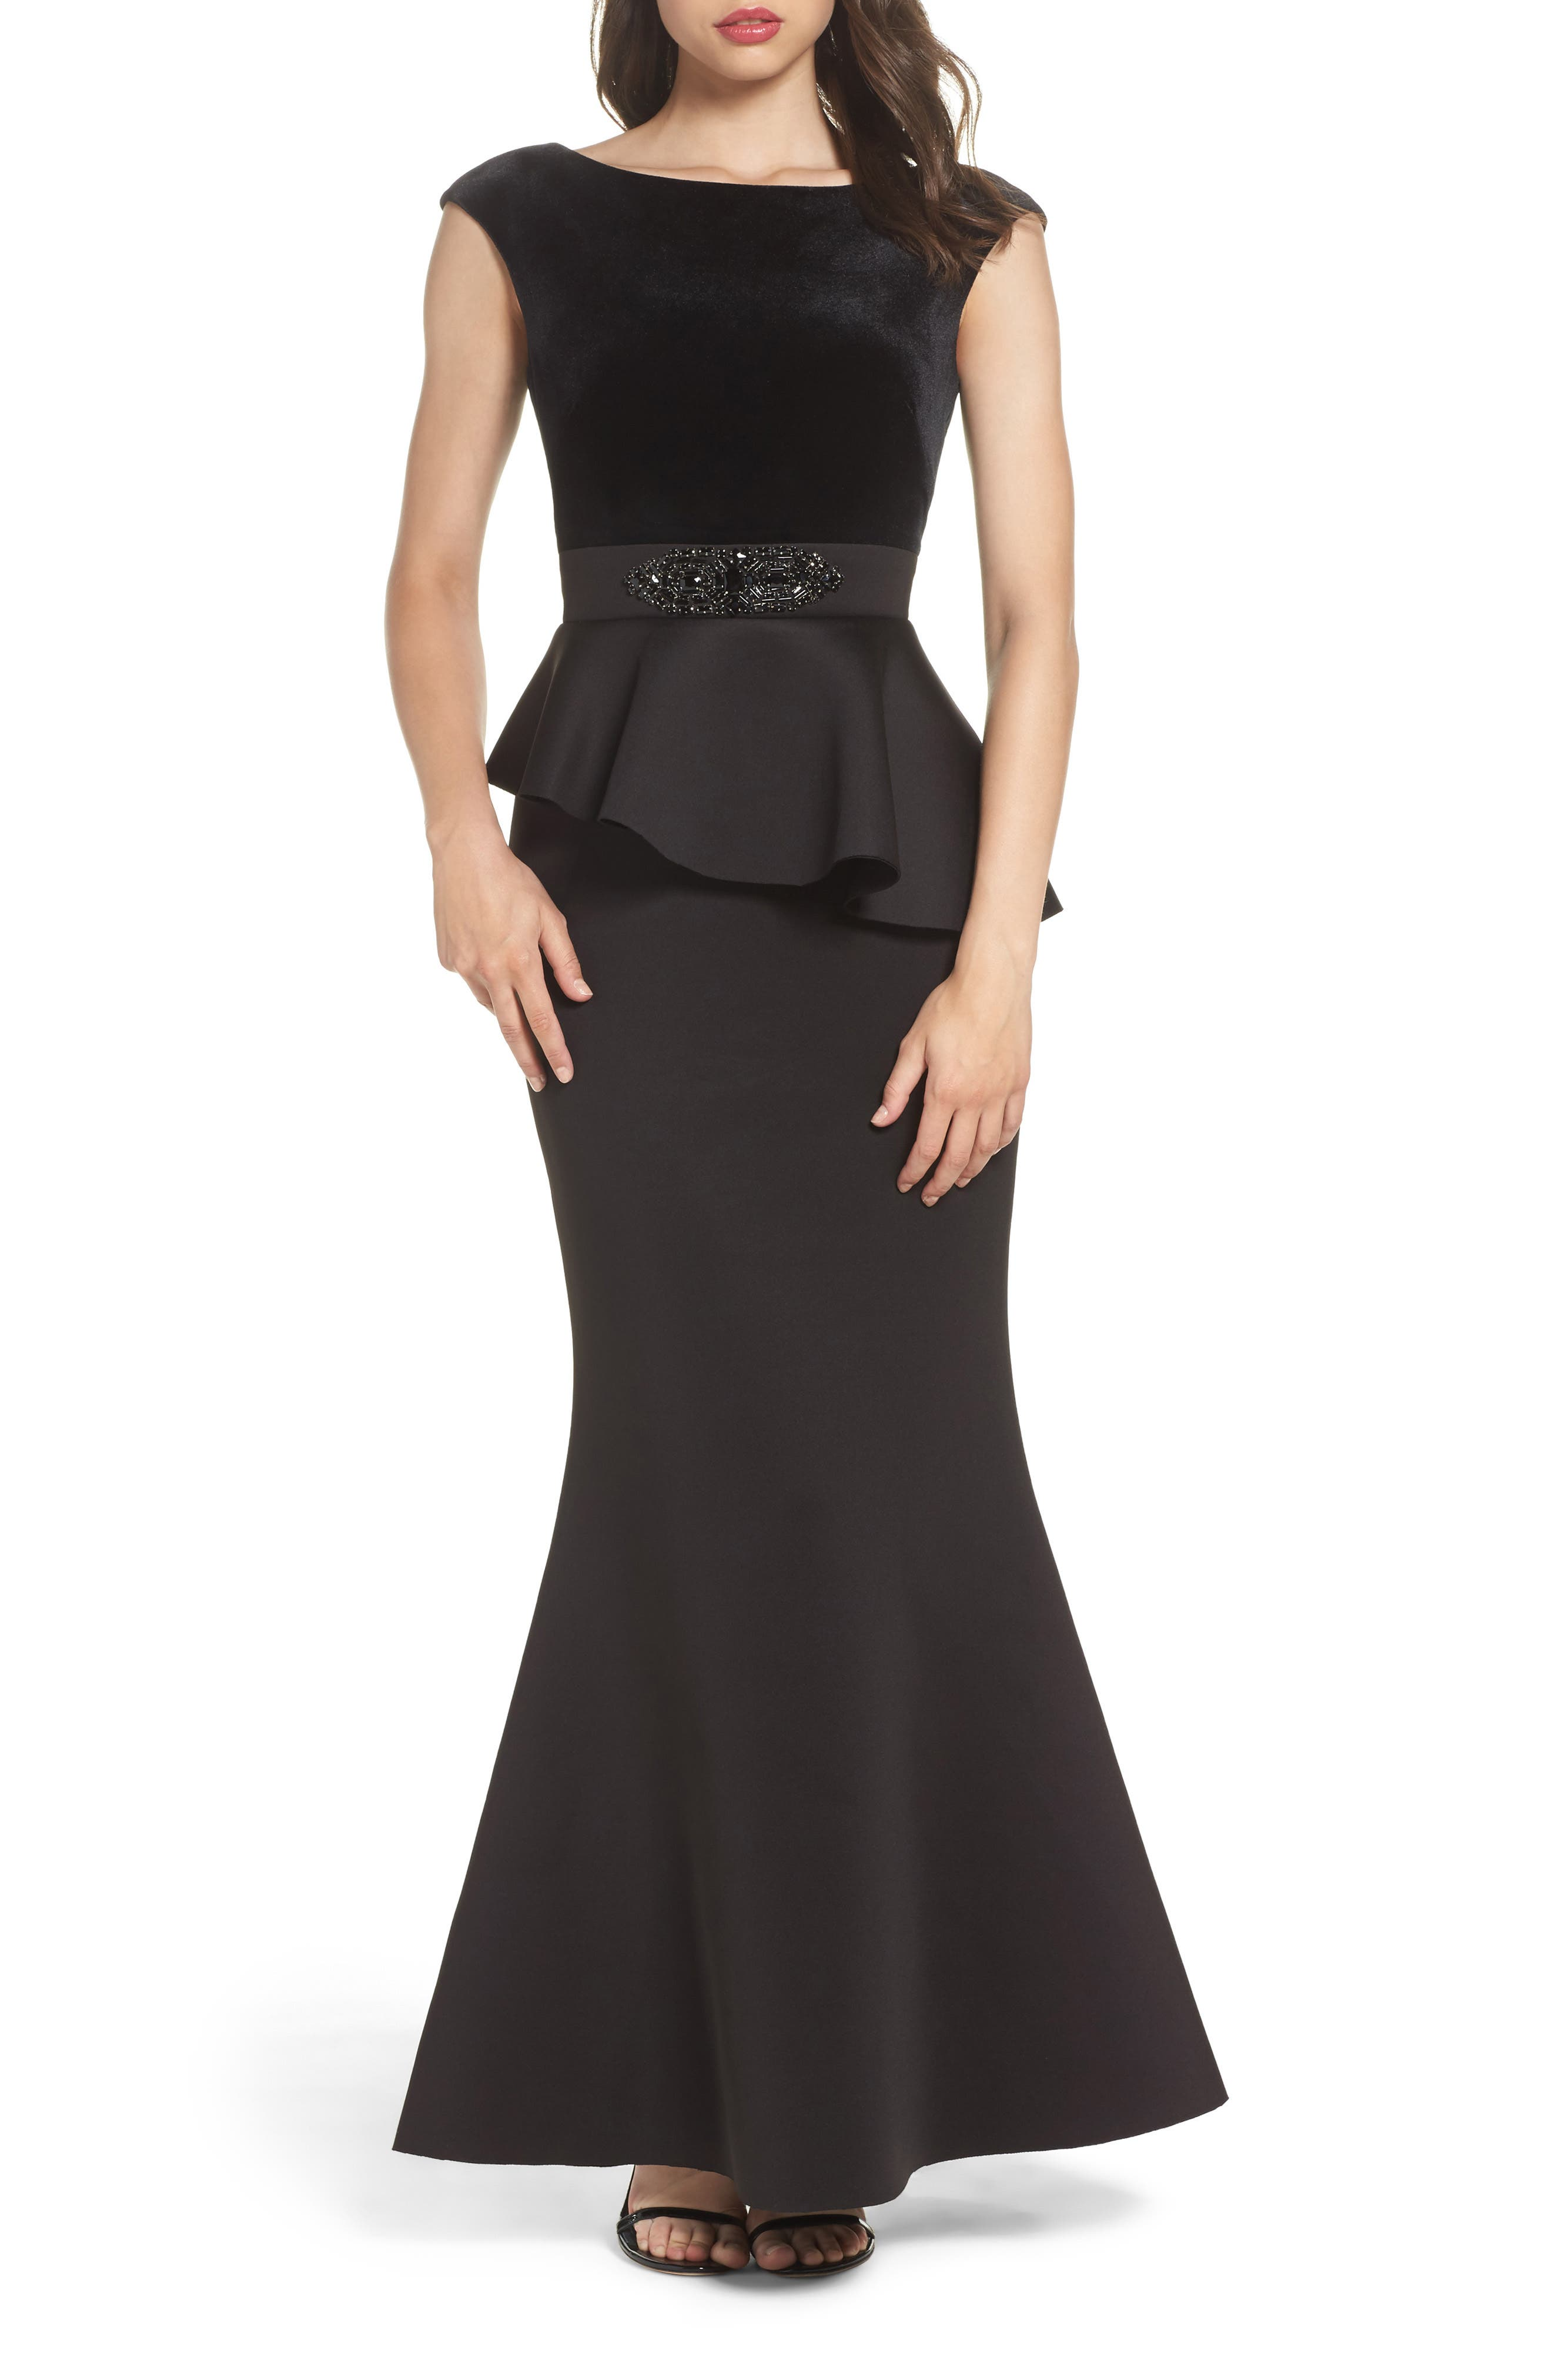 ELIZA J,                             Cap Sleeve Mixed Media Peplum Gown,                             Main thumbnail 1, color,                             001